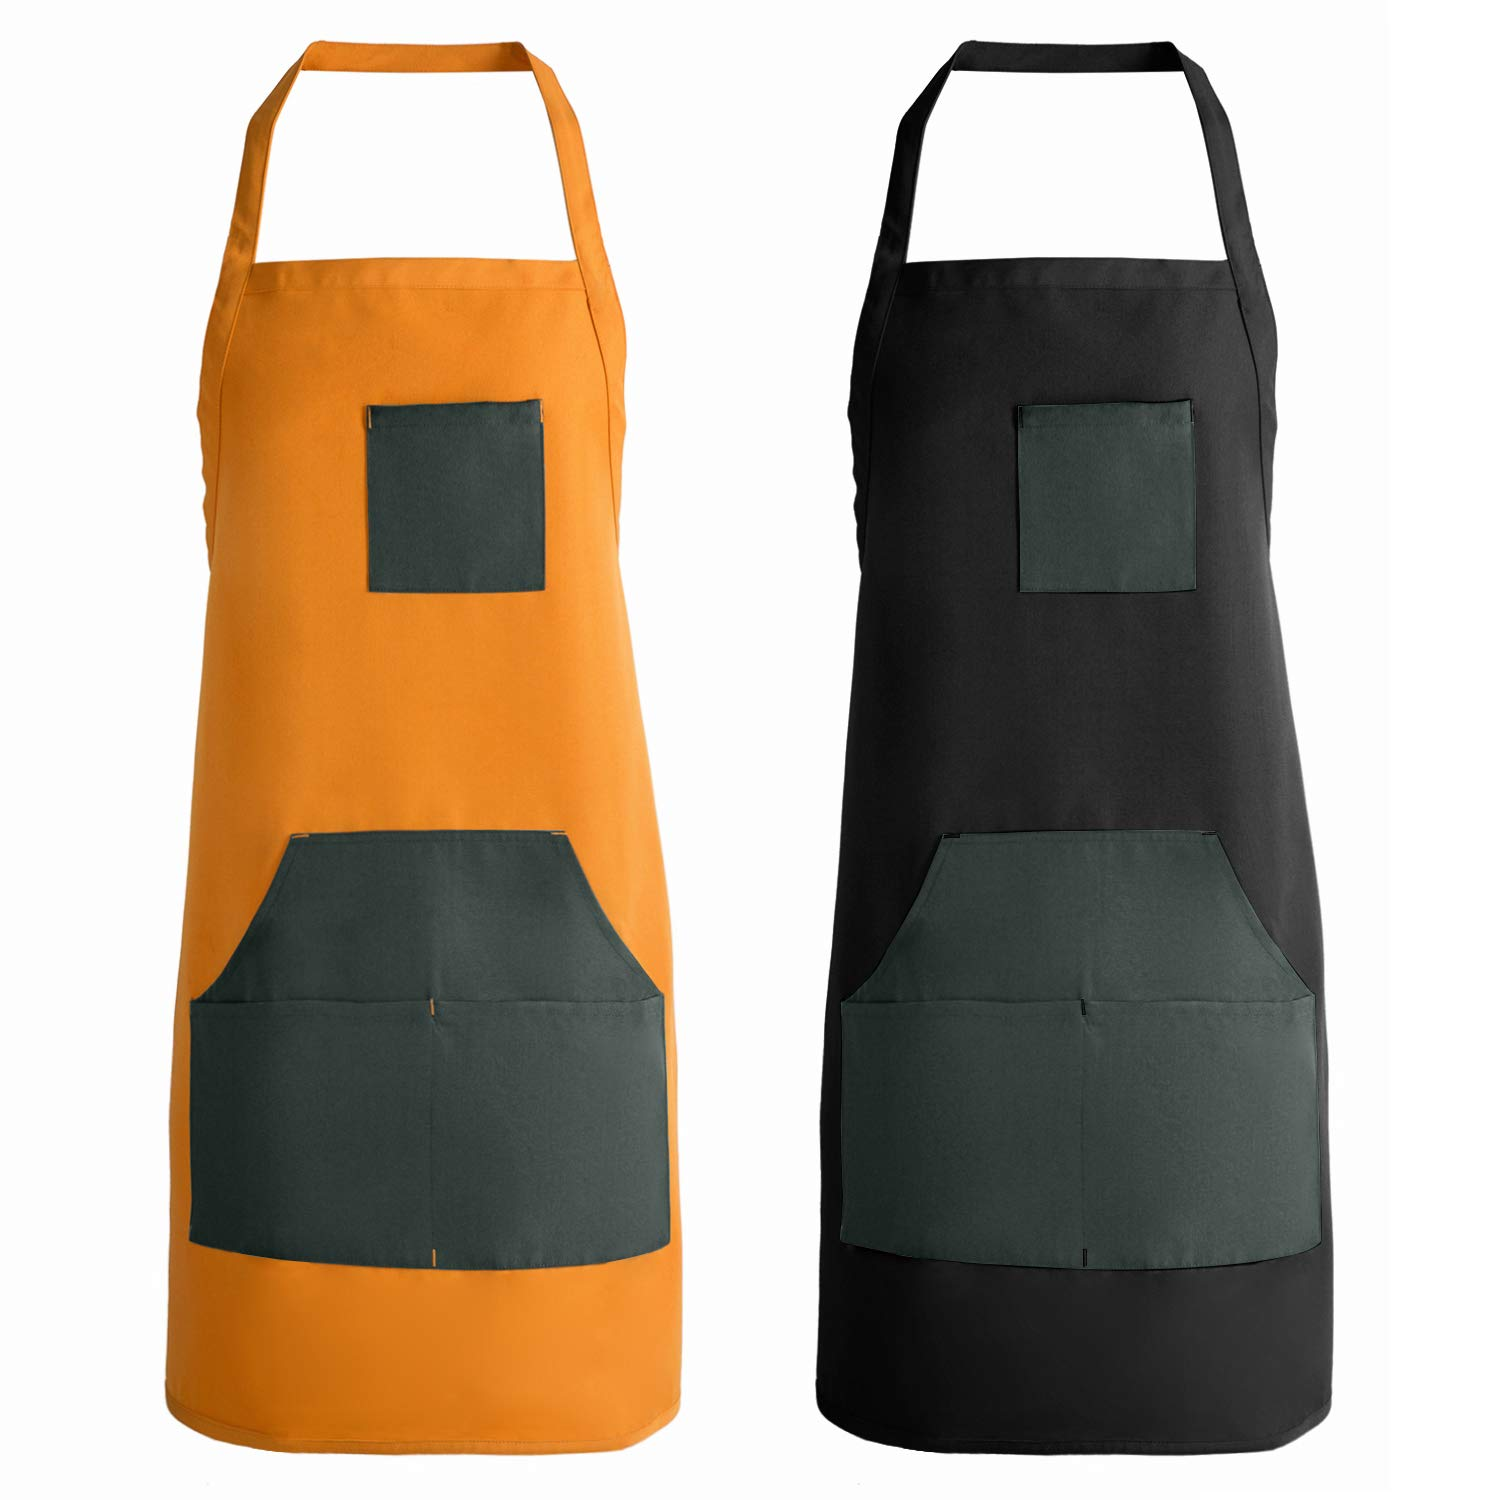 MOHEEN Work Apron For Men /& Women with Multiple Tools Pockets Waterproof Durable Cooking Apron